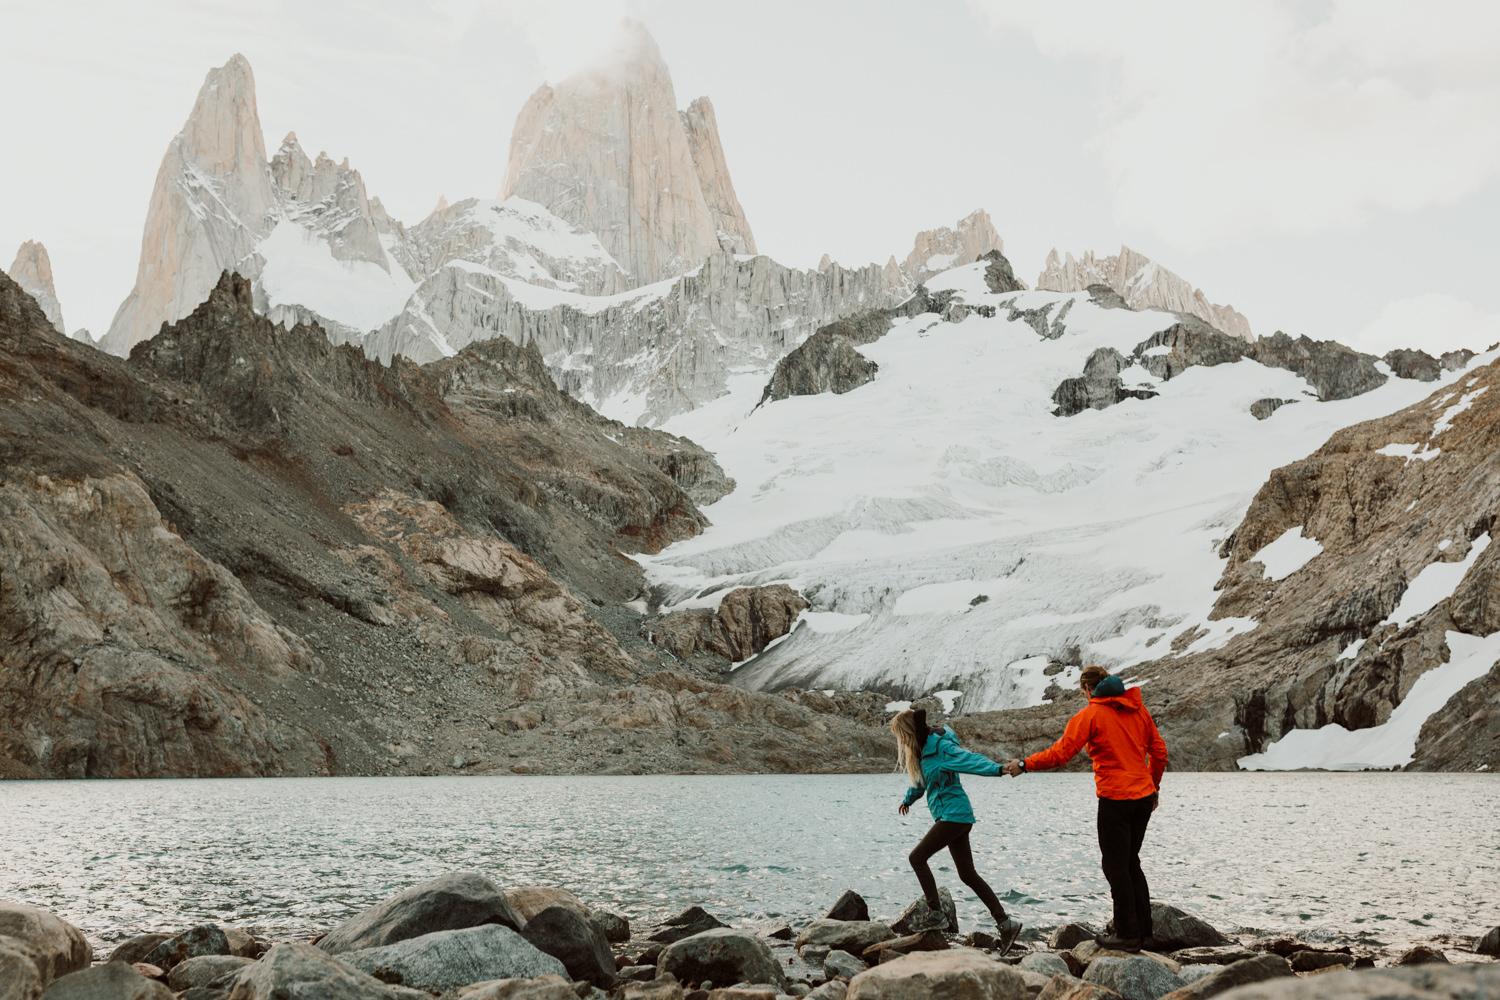 patagonia-adventure-photographer-110.jpg